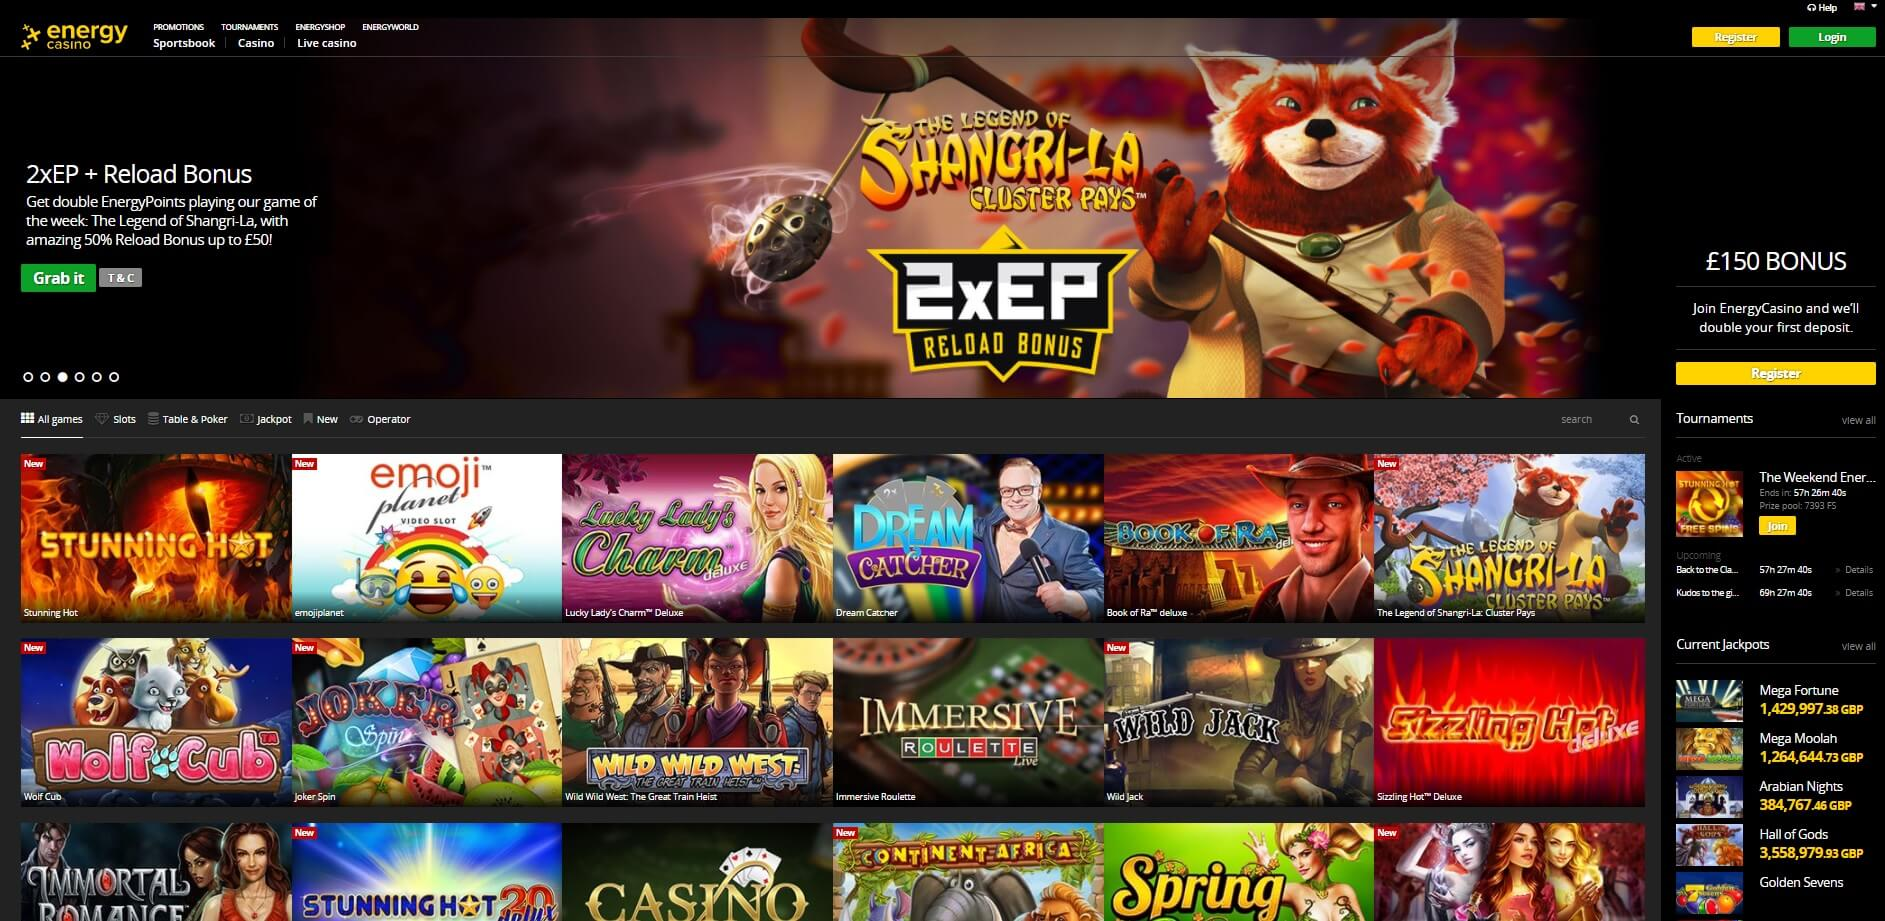 energy casino games and slots